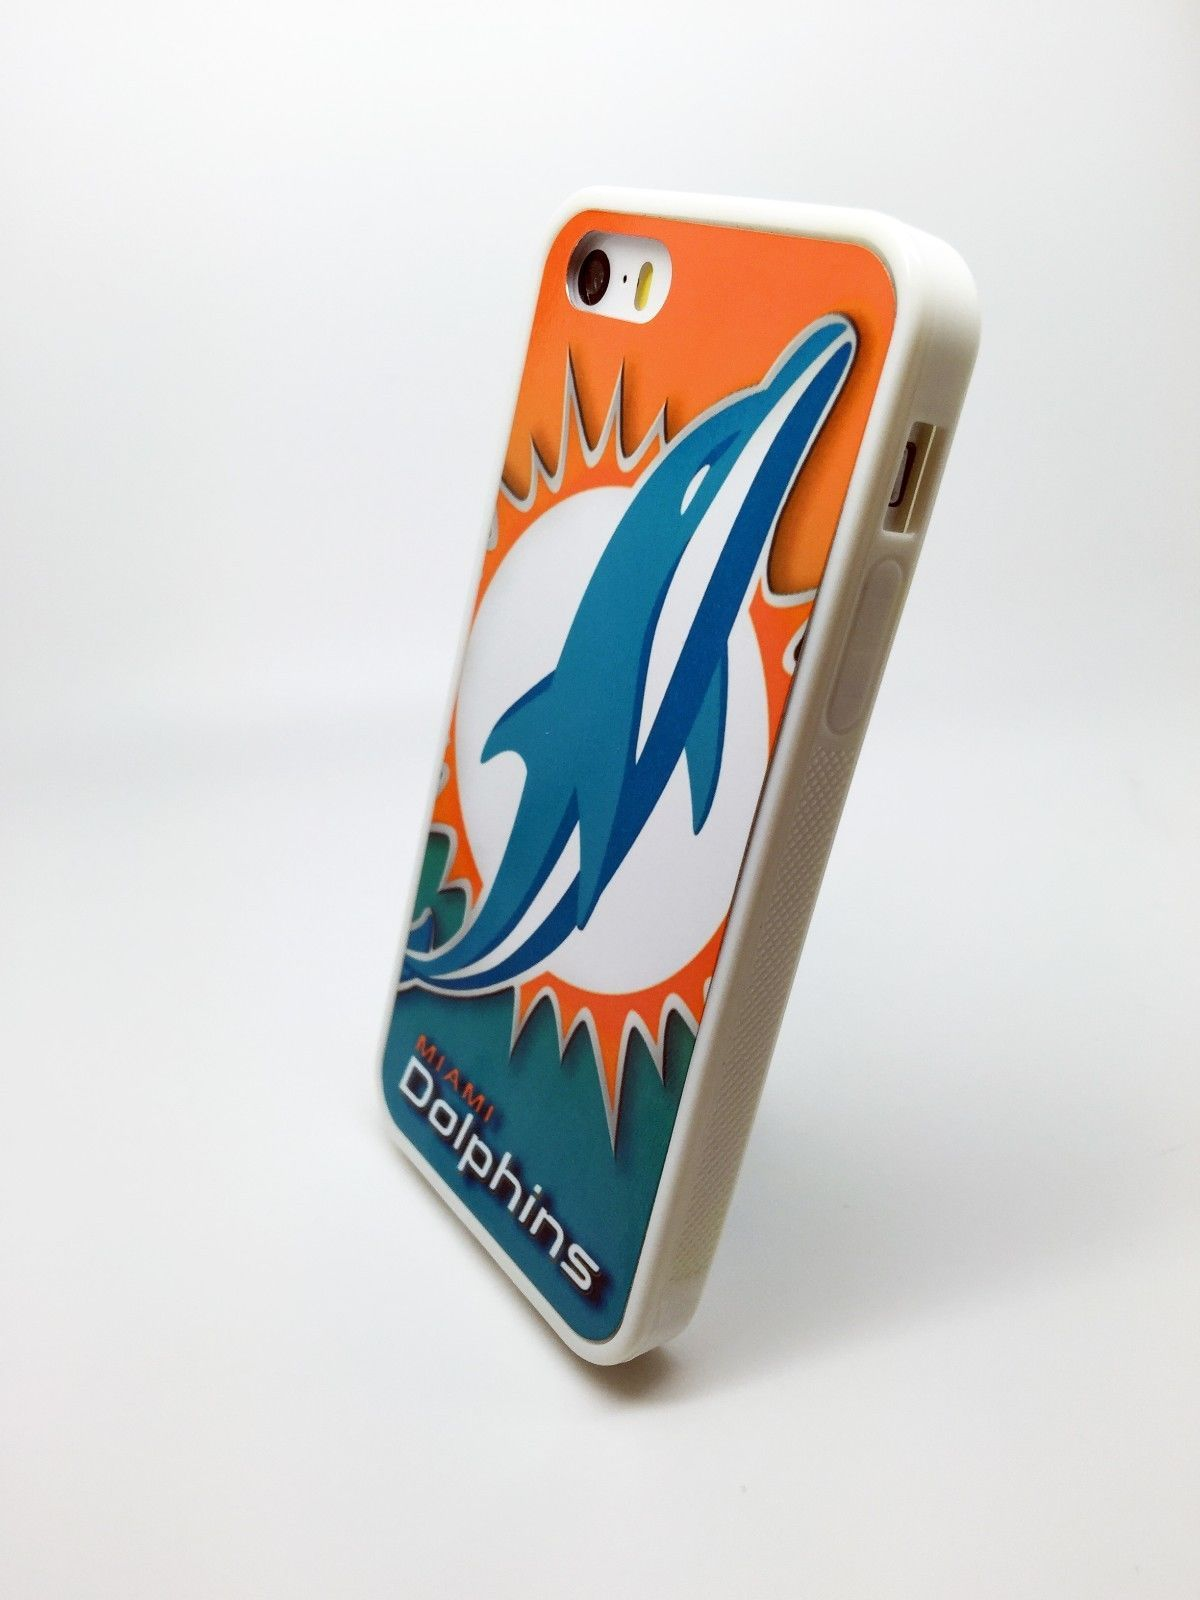 NEW MIAMI DOLPHINS NFL FOOTBALL PHONE CASE FOR iPHONE 7 6S 6 6 PLUS 5 5S 5C 4